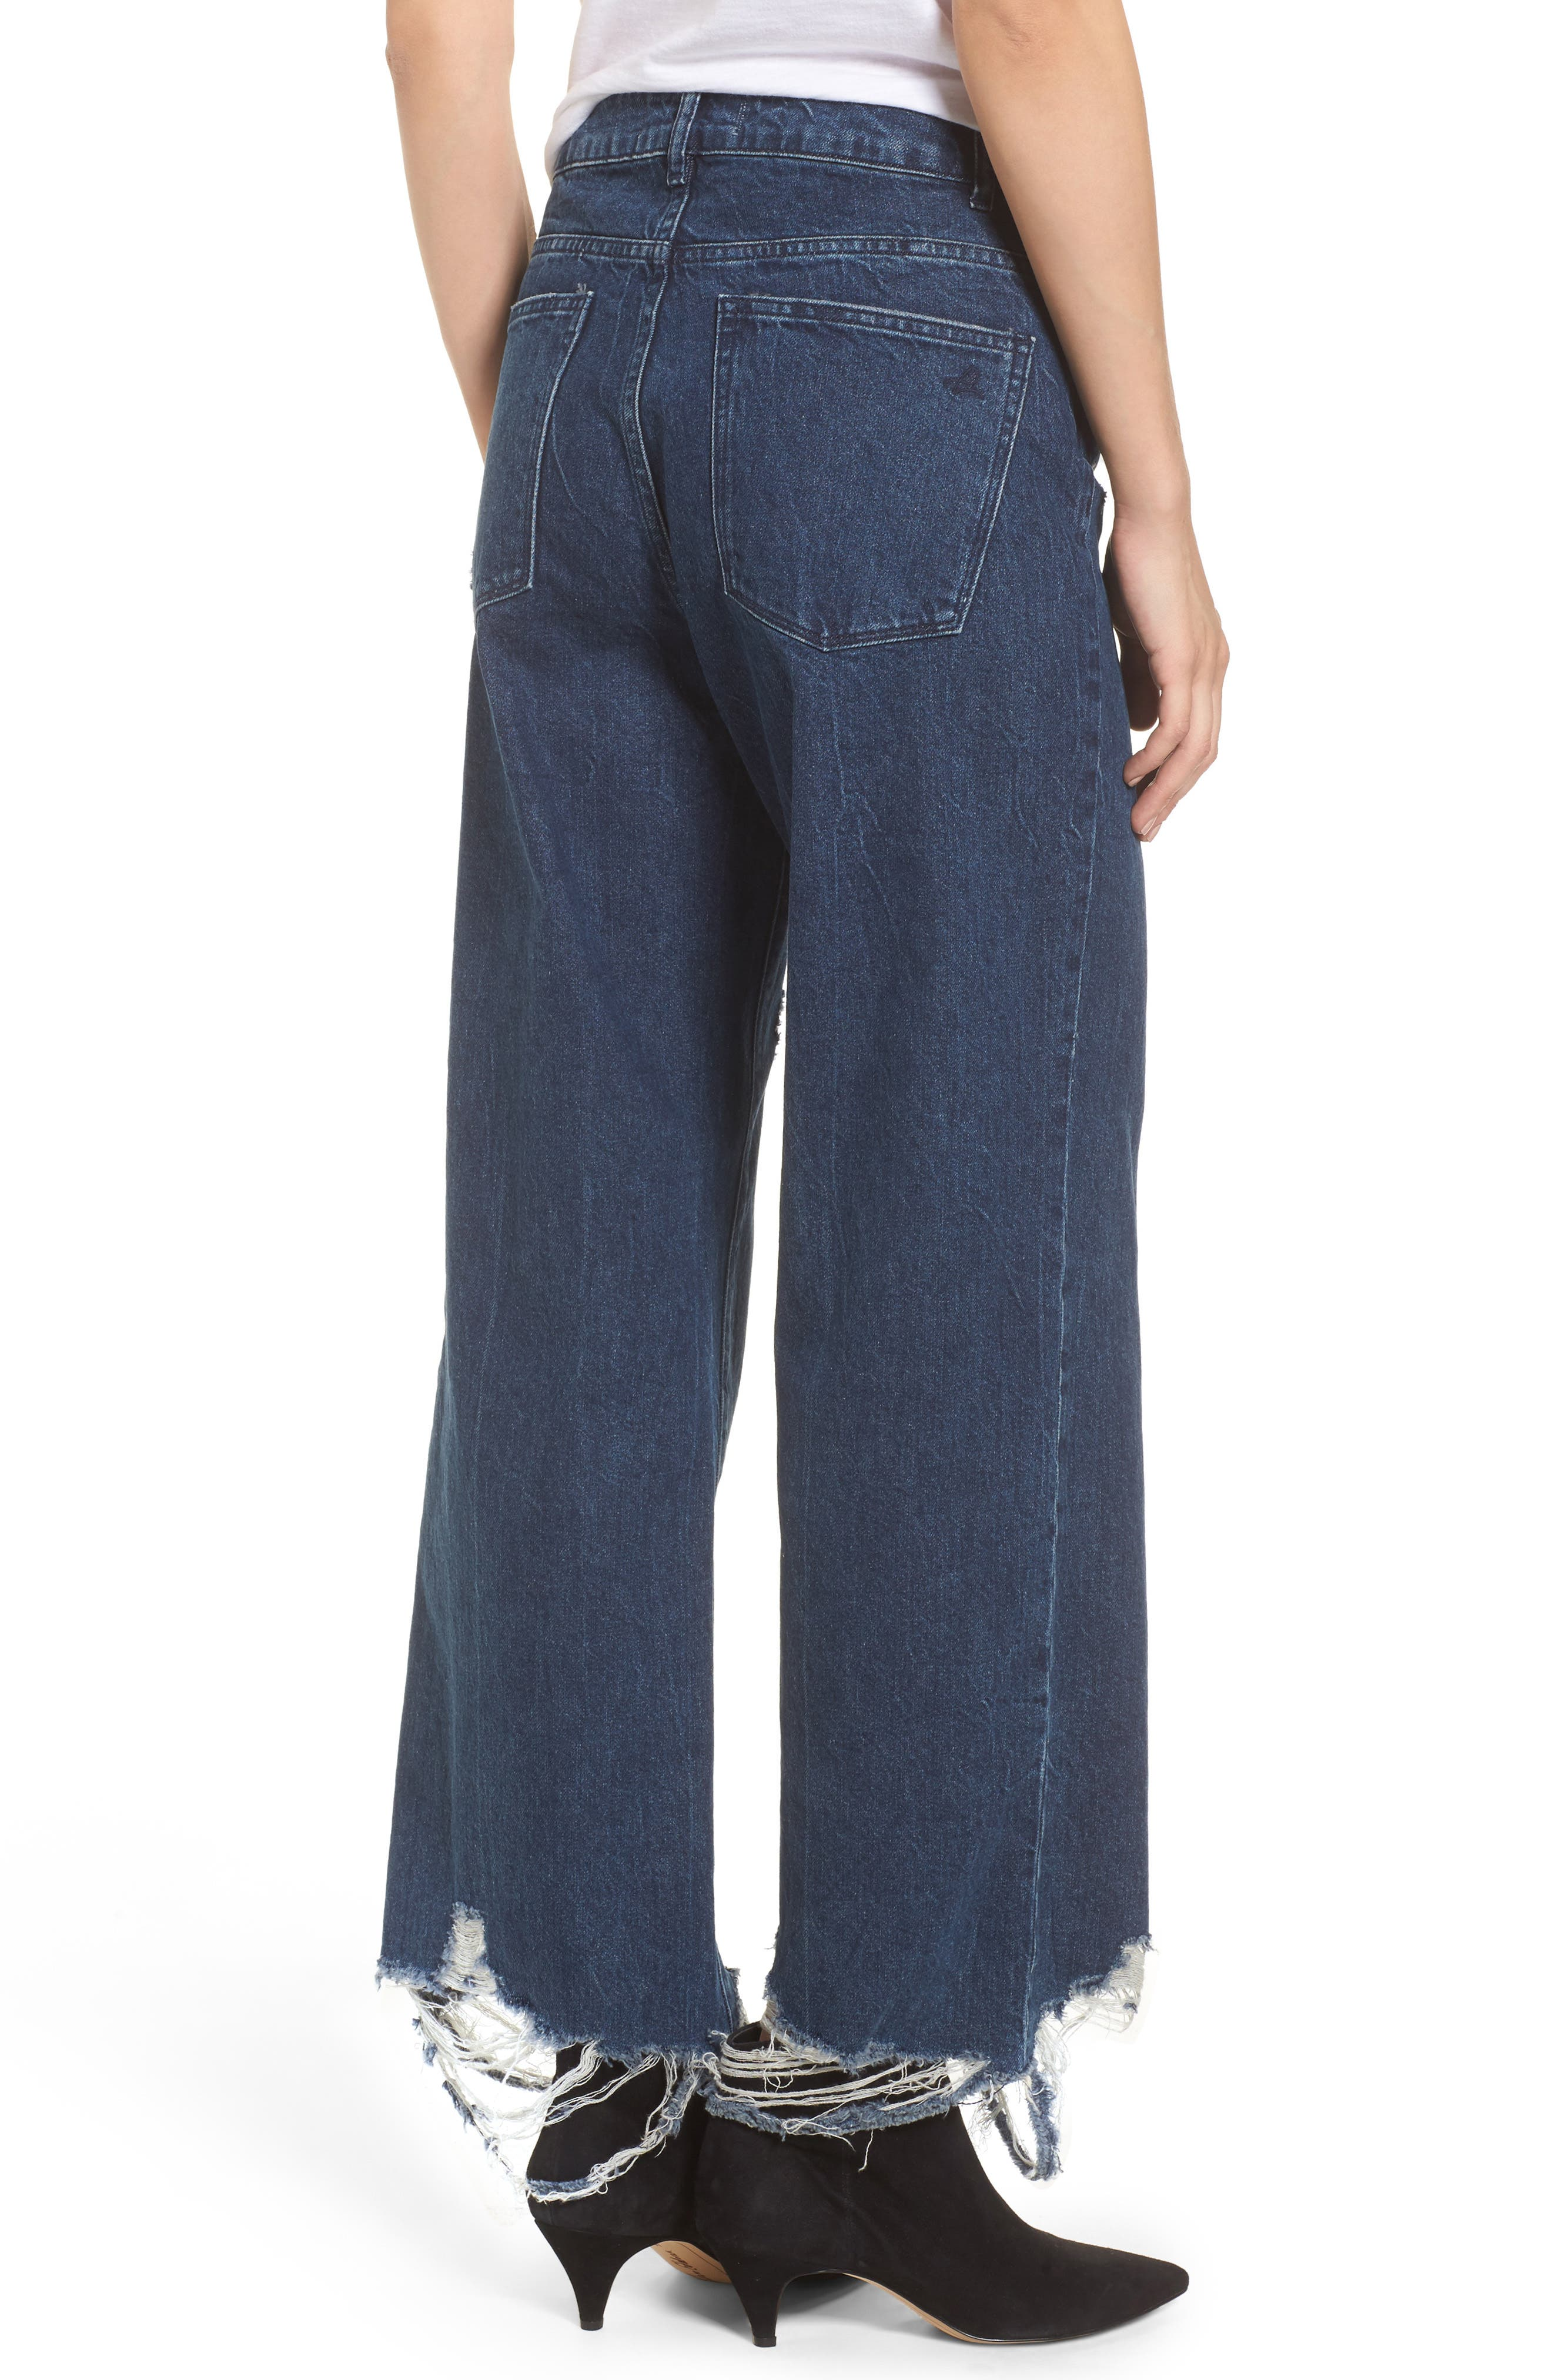 Hepburn High Waist Wide Leg Jeans,                             Alternate thumbnail 2, color,